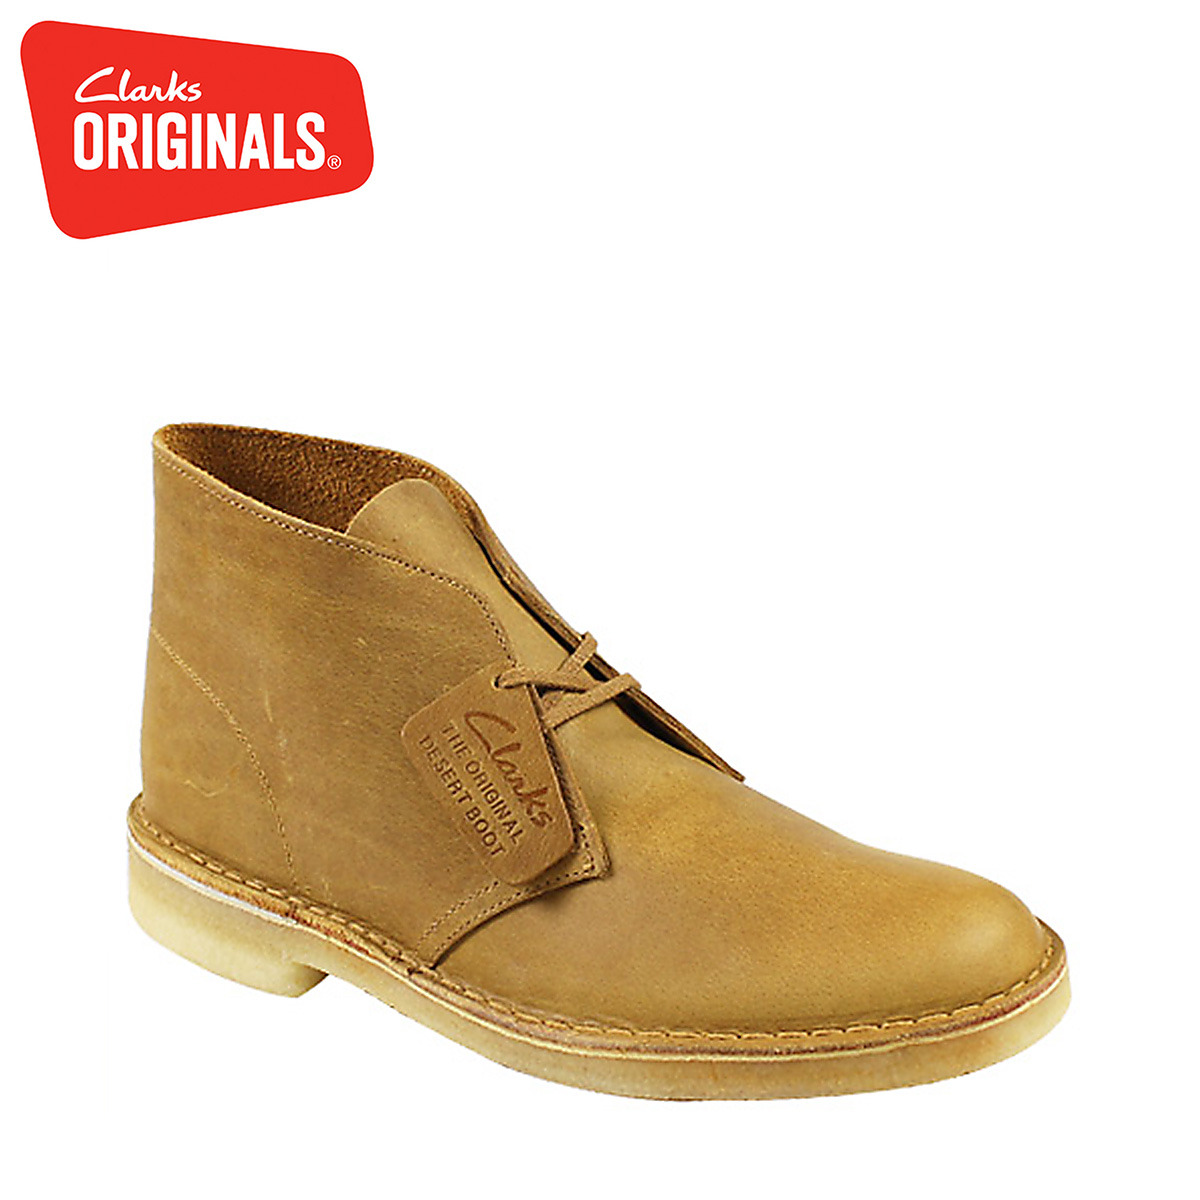 great deals 2017 shop for original discount sale Clarks ORIGINALS kulaki originals desert boots DESERT BOOT M Wise 26108405  men